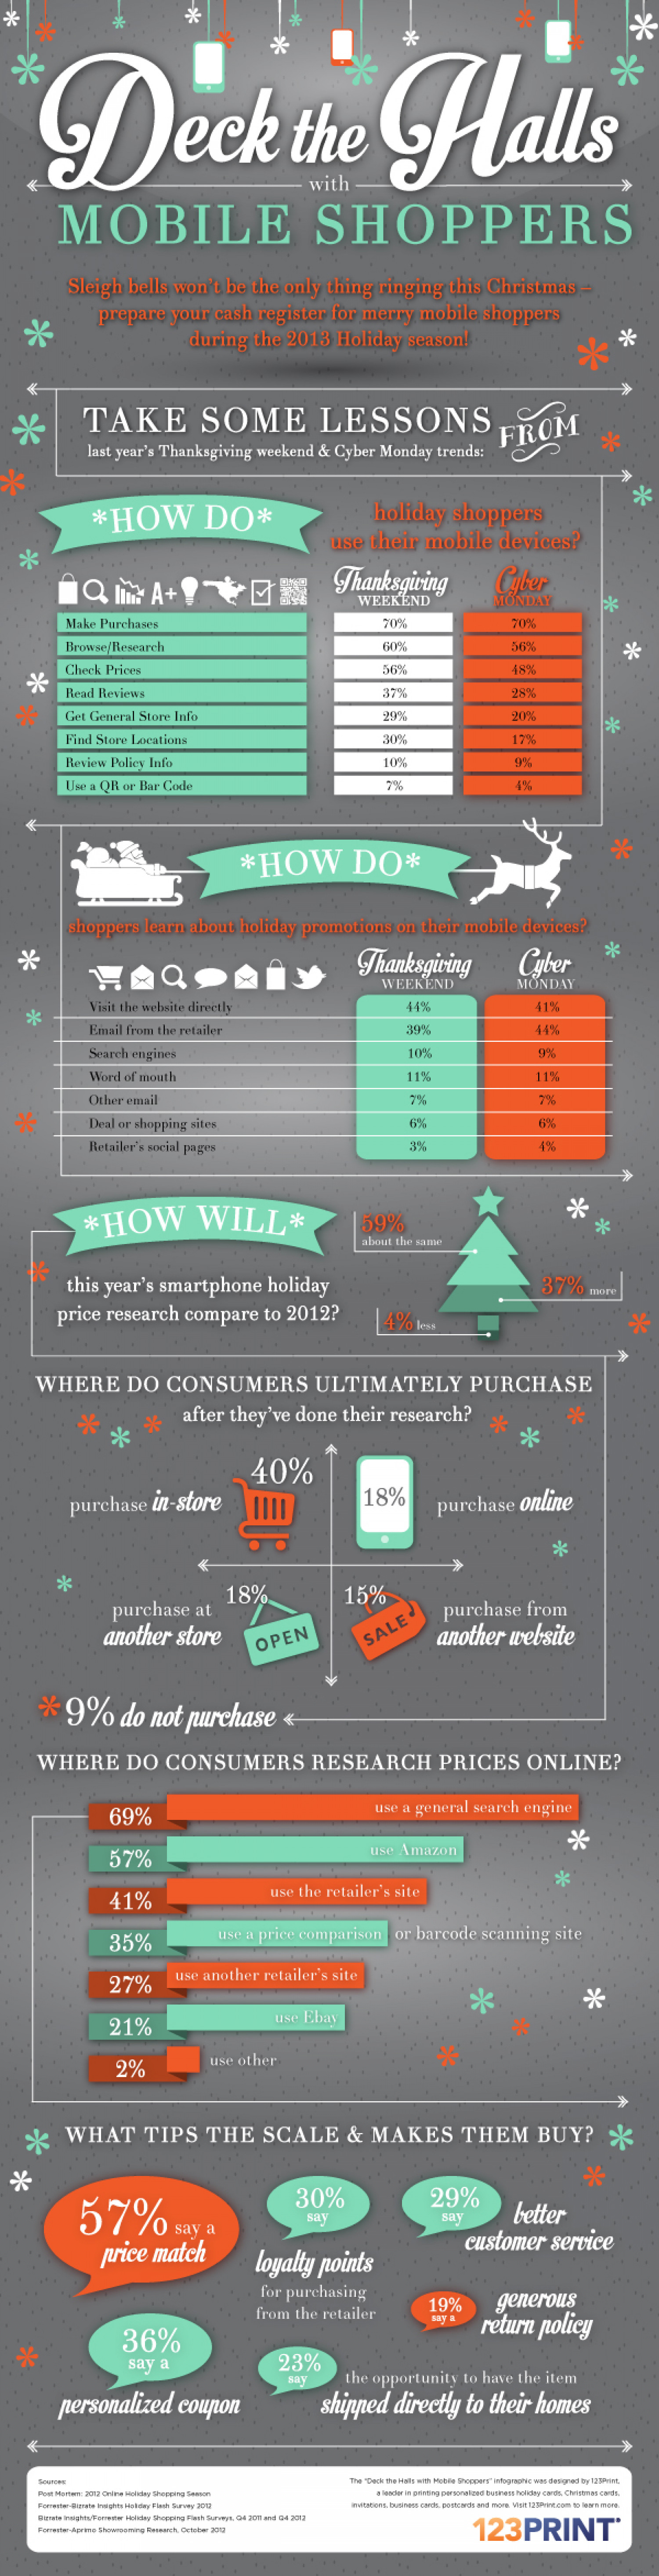 Deck the Halls with Mobile Shoppers Infographic